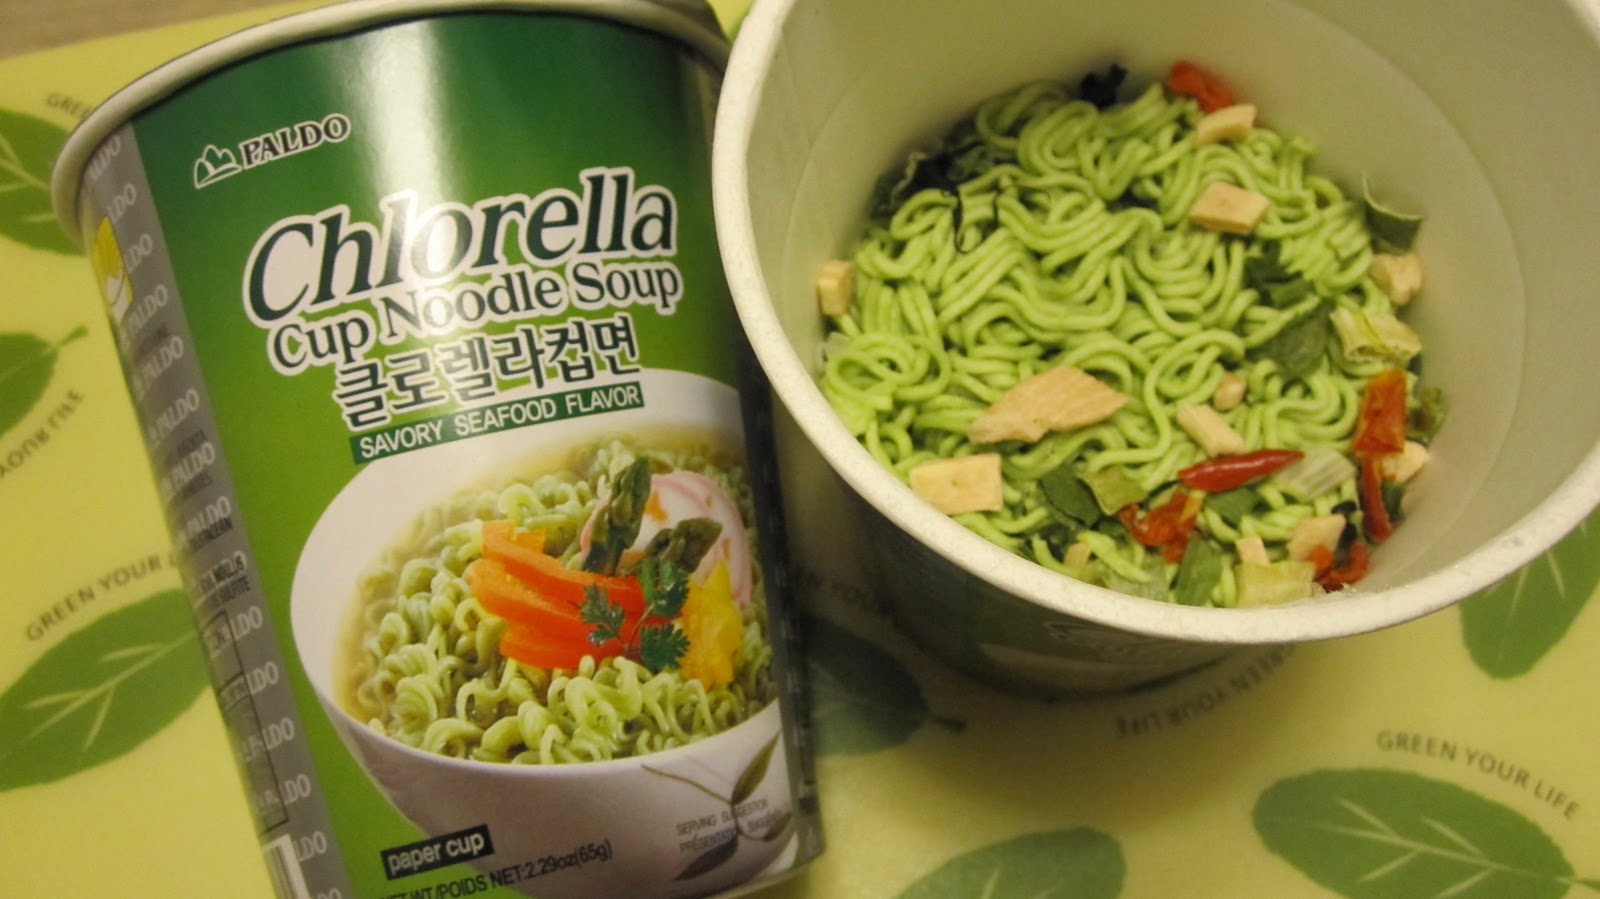 Supersupergirls Food Reviews Paldo Chlorella Cup Noodle Savory Makaroni Rasa Green Tea Nice And Colourful However It Tasted Very Fishy The Noodles Were Foamy